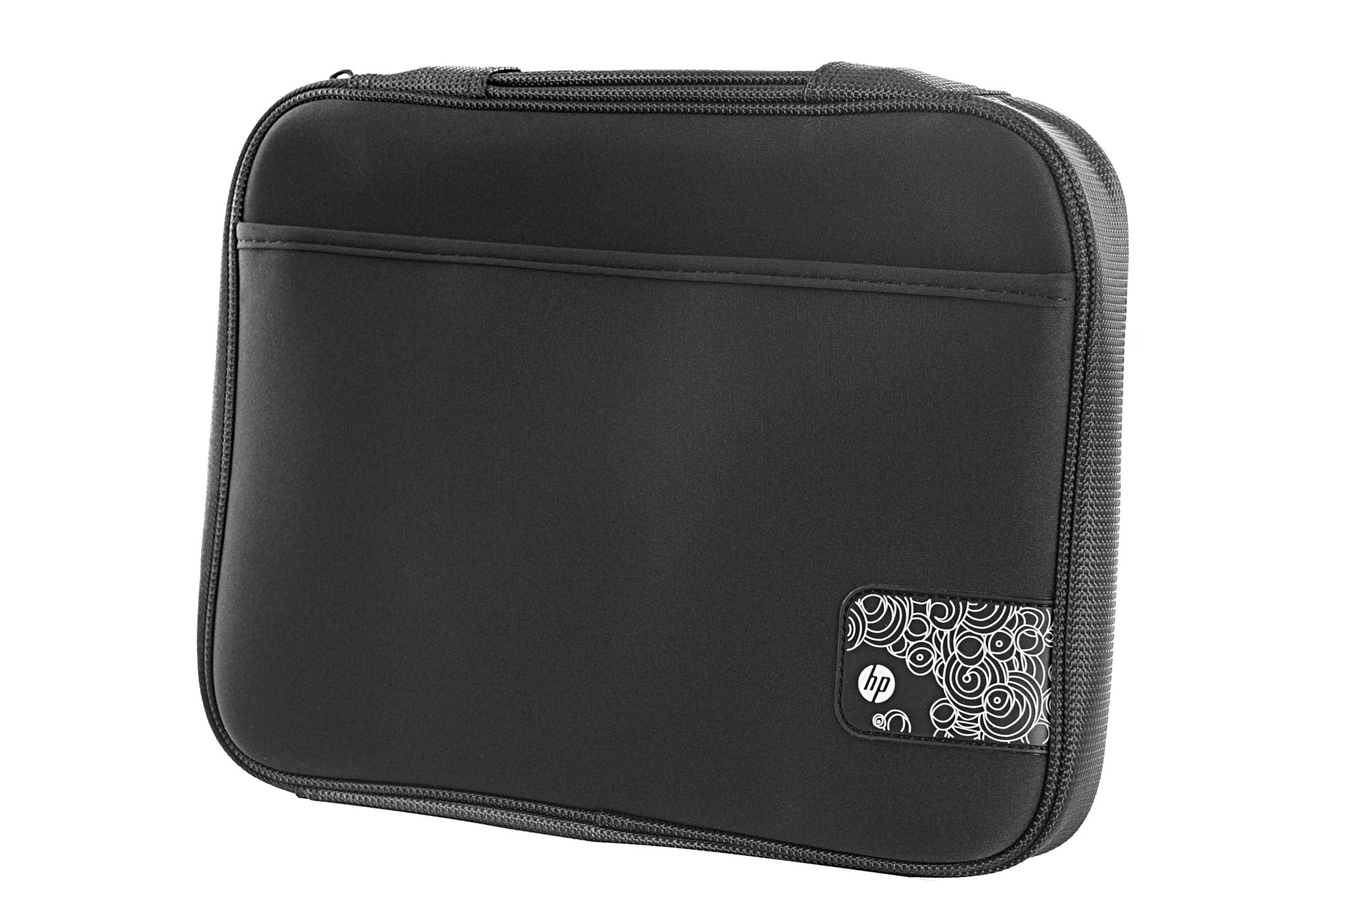 Sacoche pour ordinateur portable hp mini sleeve black 12 for Image pour ordinateur